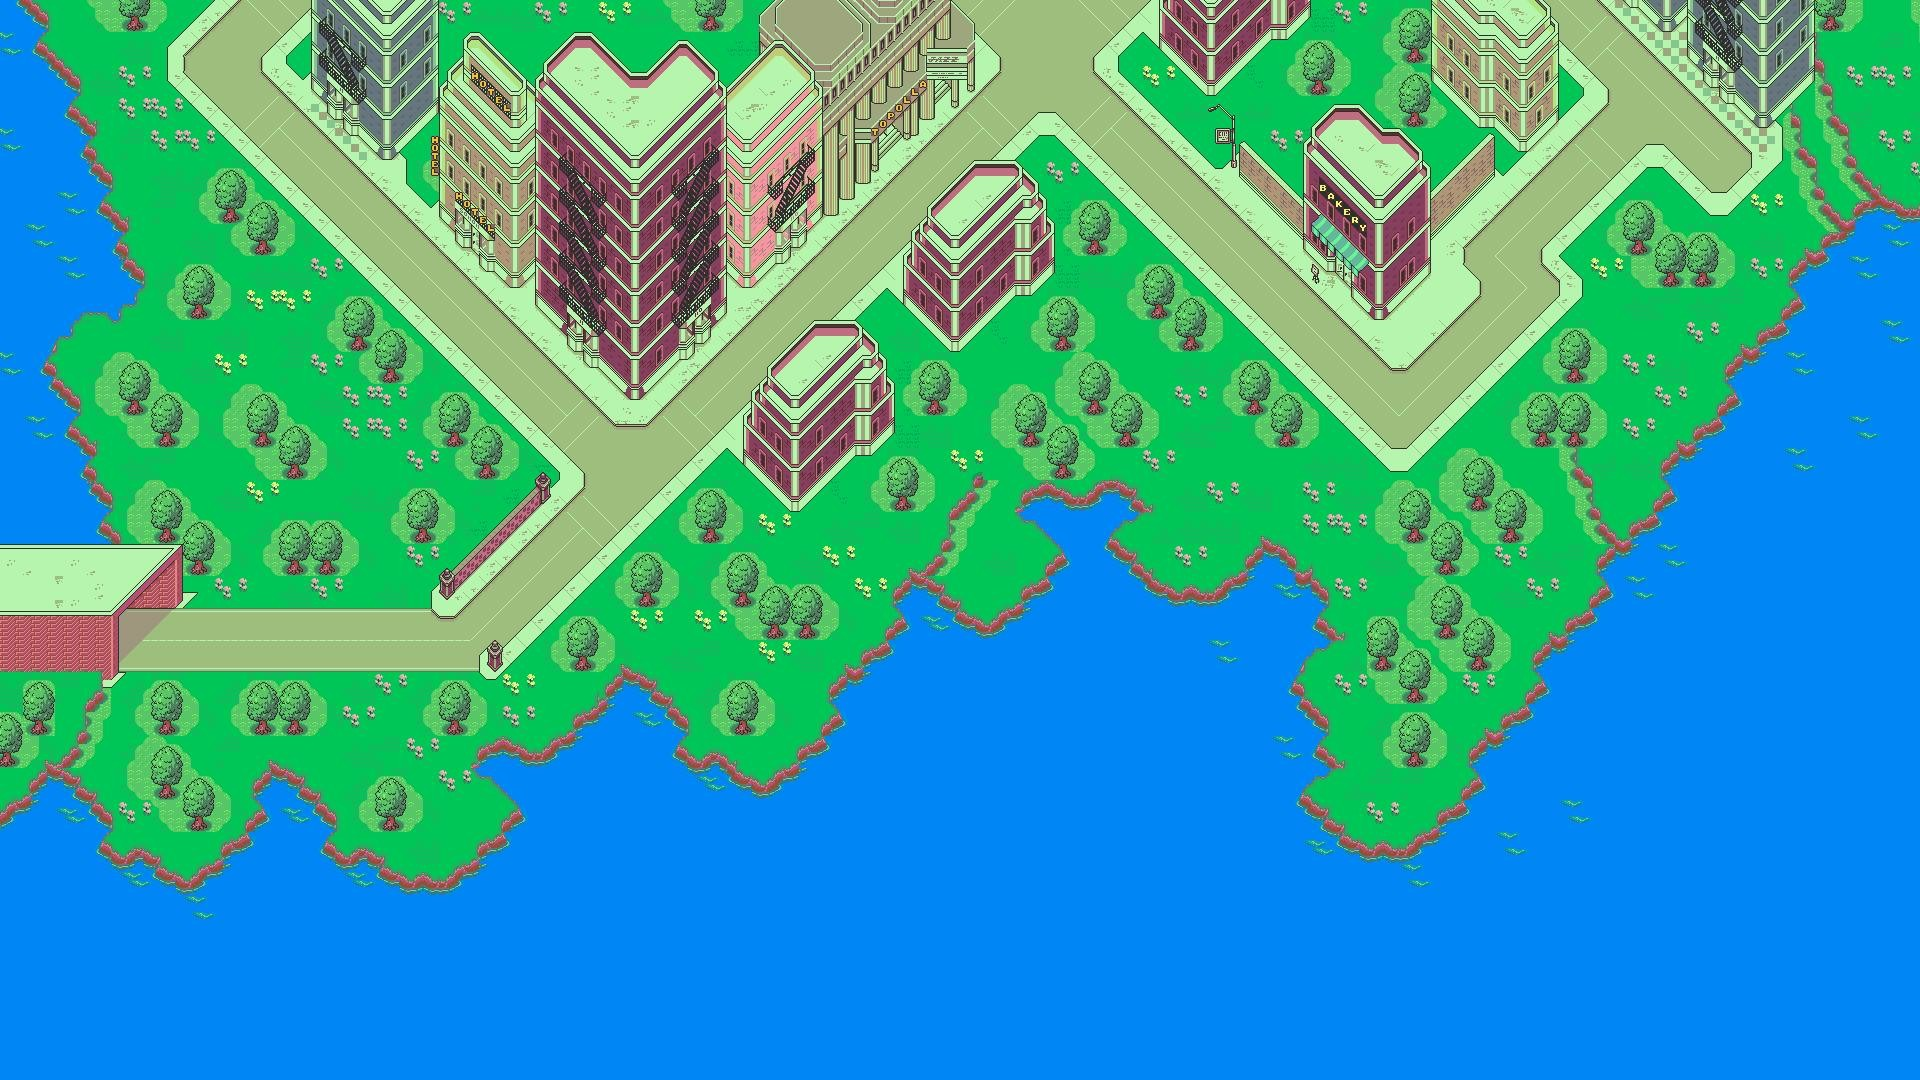 1920x1080 HD-Earthbound-Video-Games-Cityscapes-Mother-Pixelart-Super-